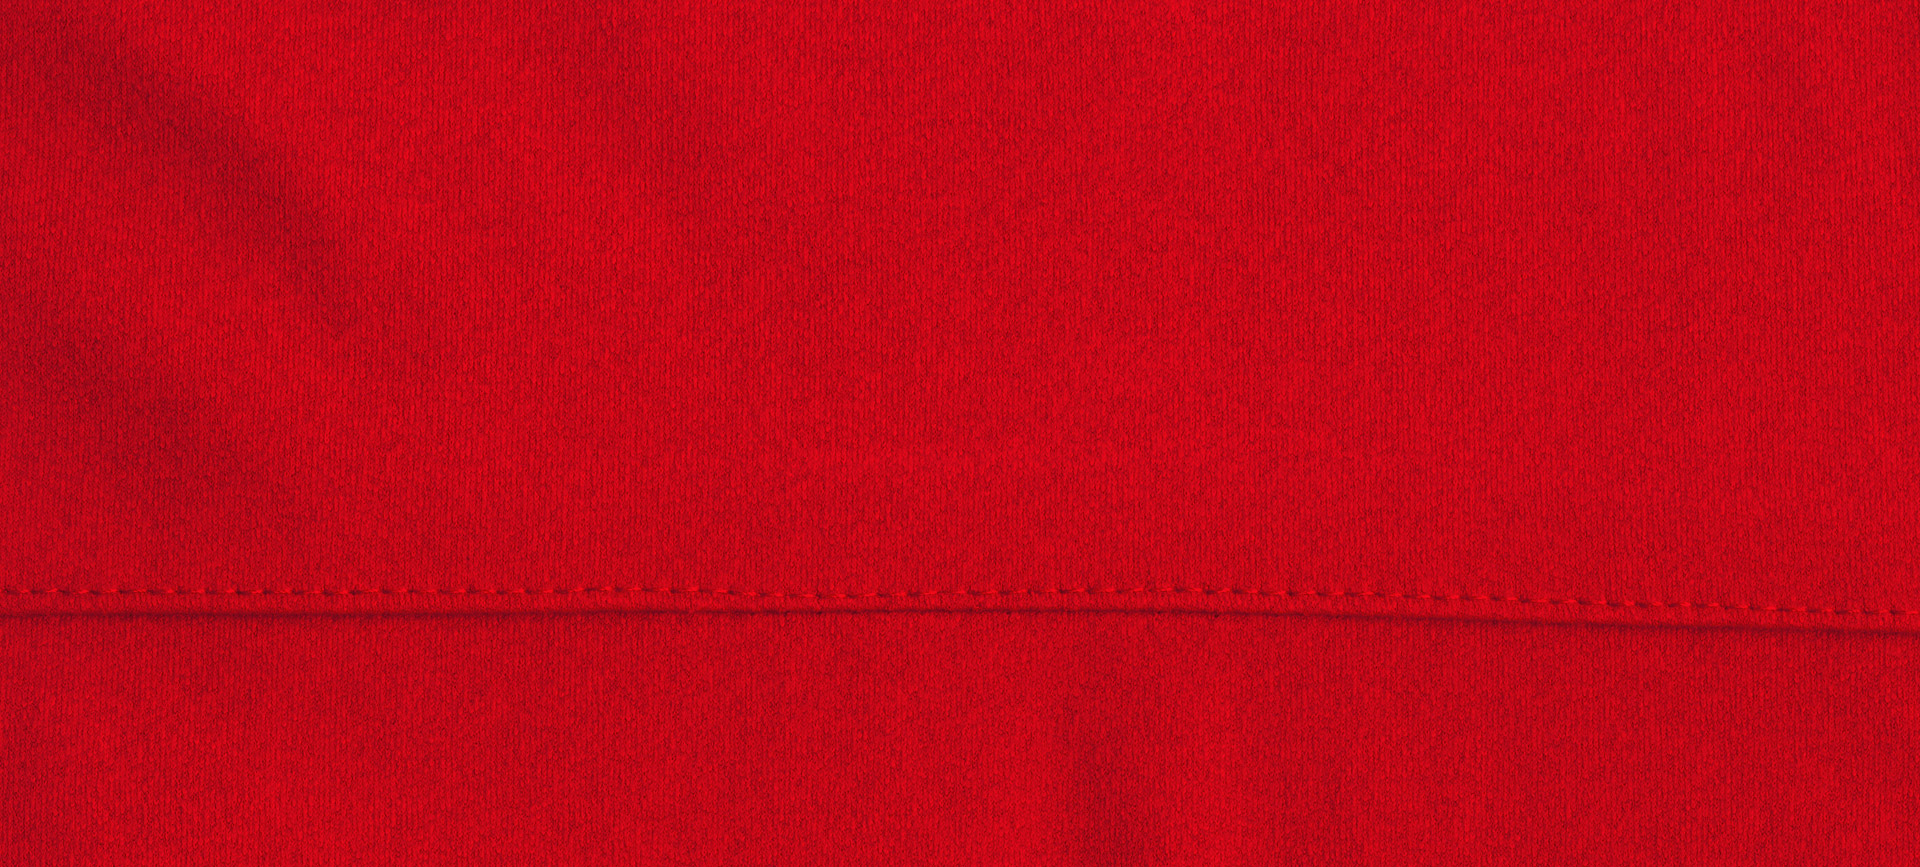 Iphone X 2018 Wallpaper Red Cloth With Seam Free Stock Photo Public Domain Pictures